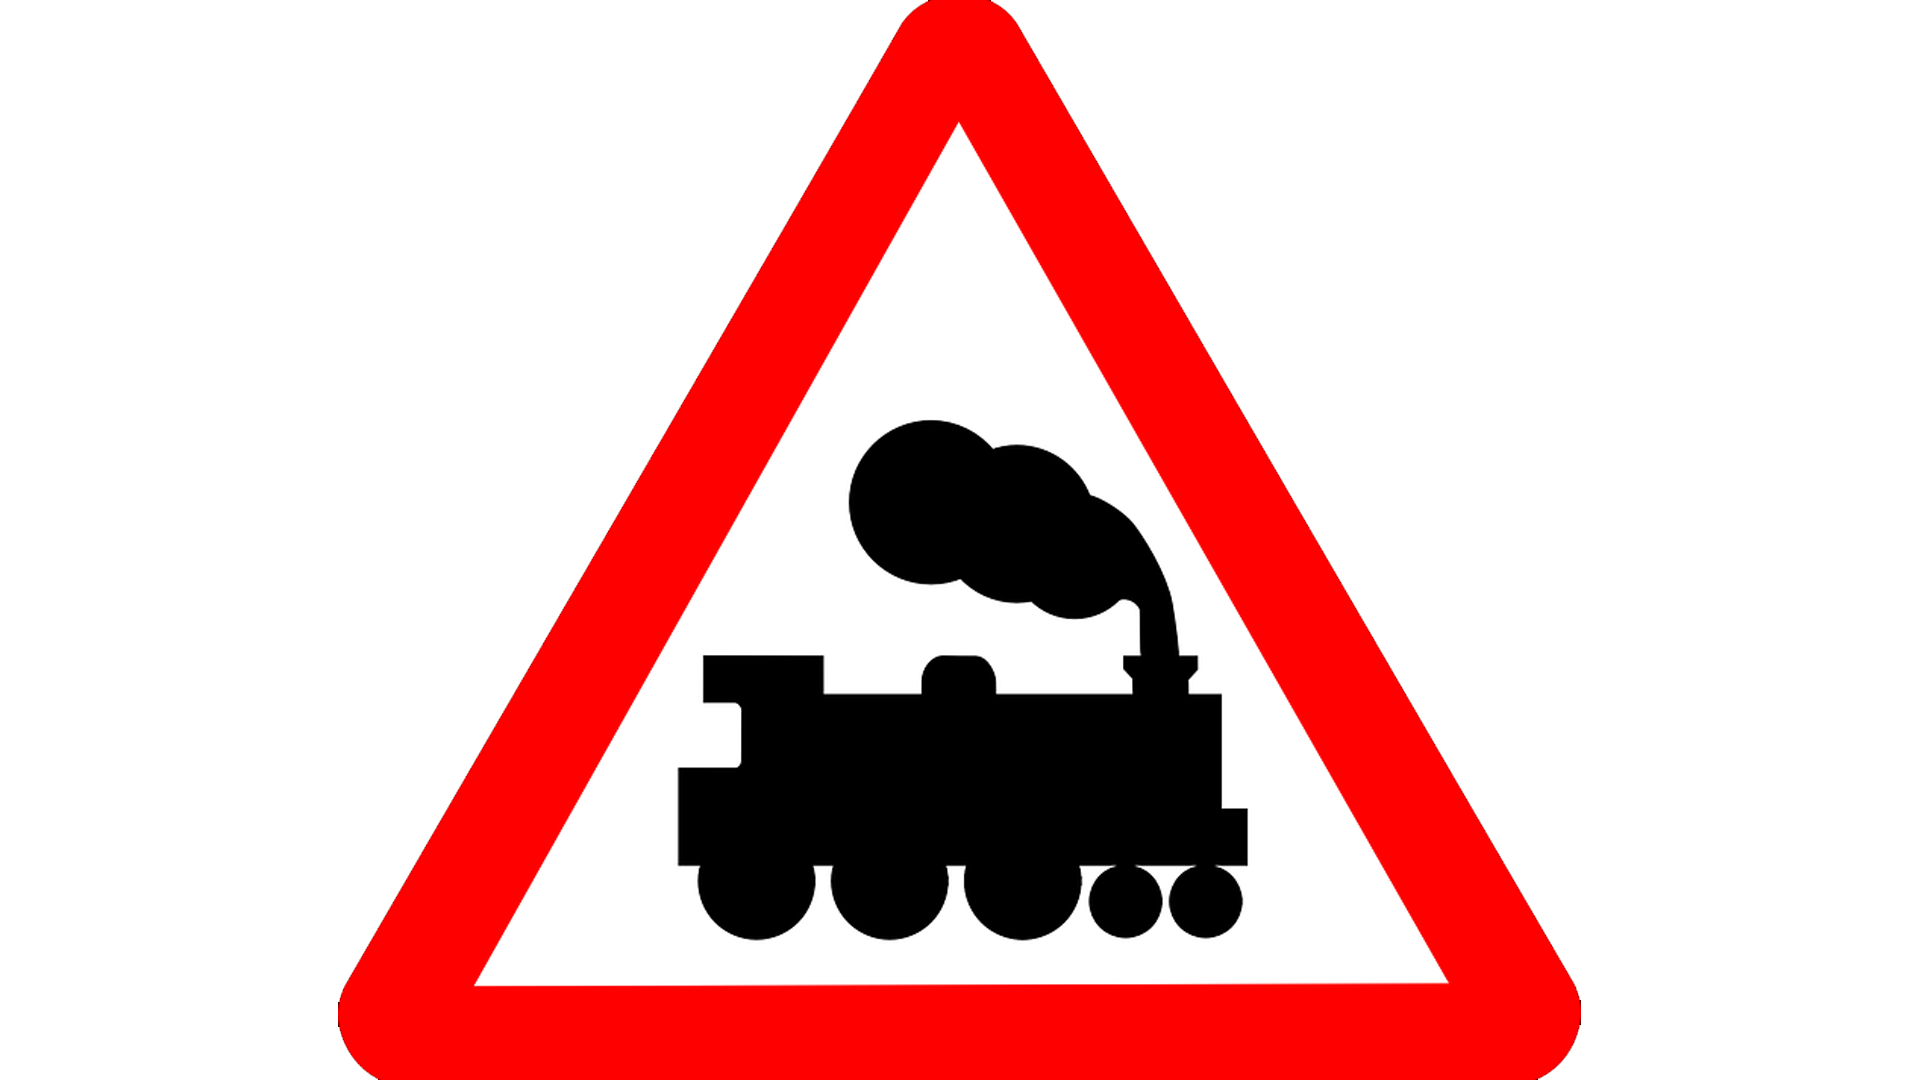 File image of a railway crossing sign